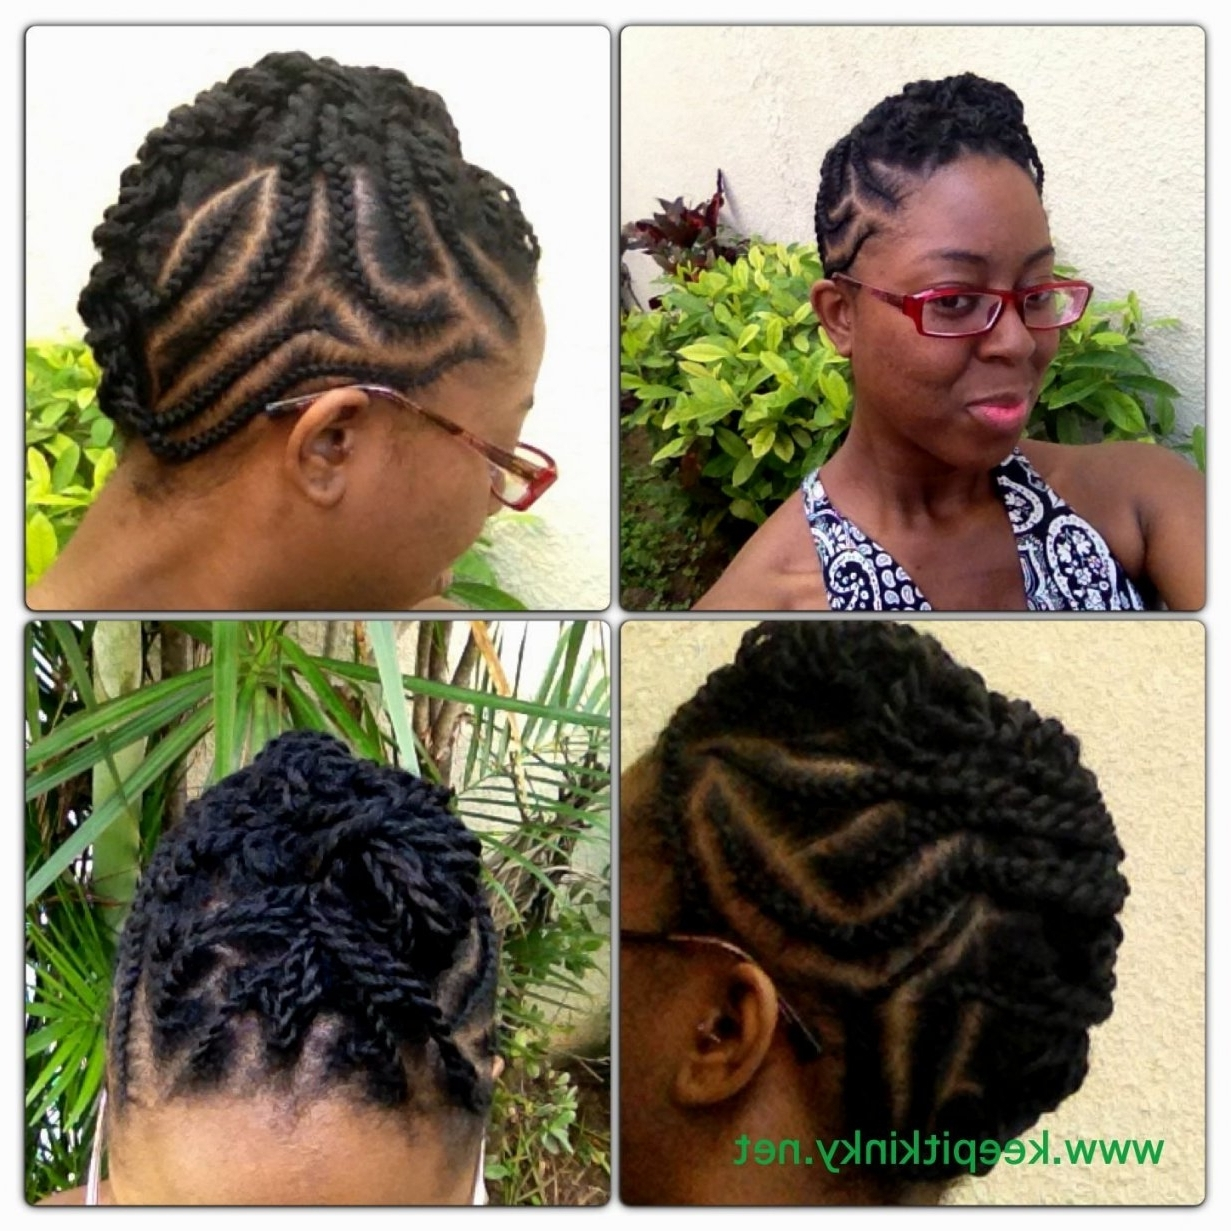 Hairstyles Ideas (View 11 of 15)